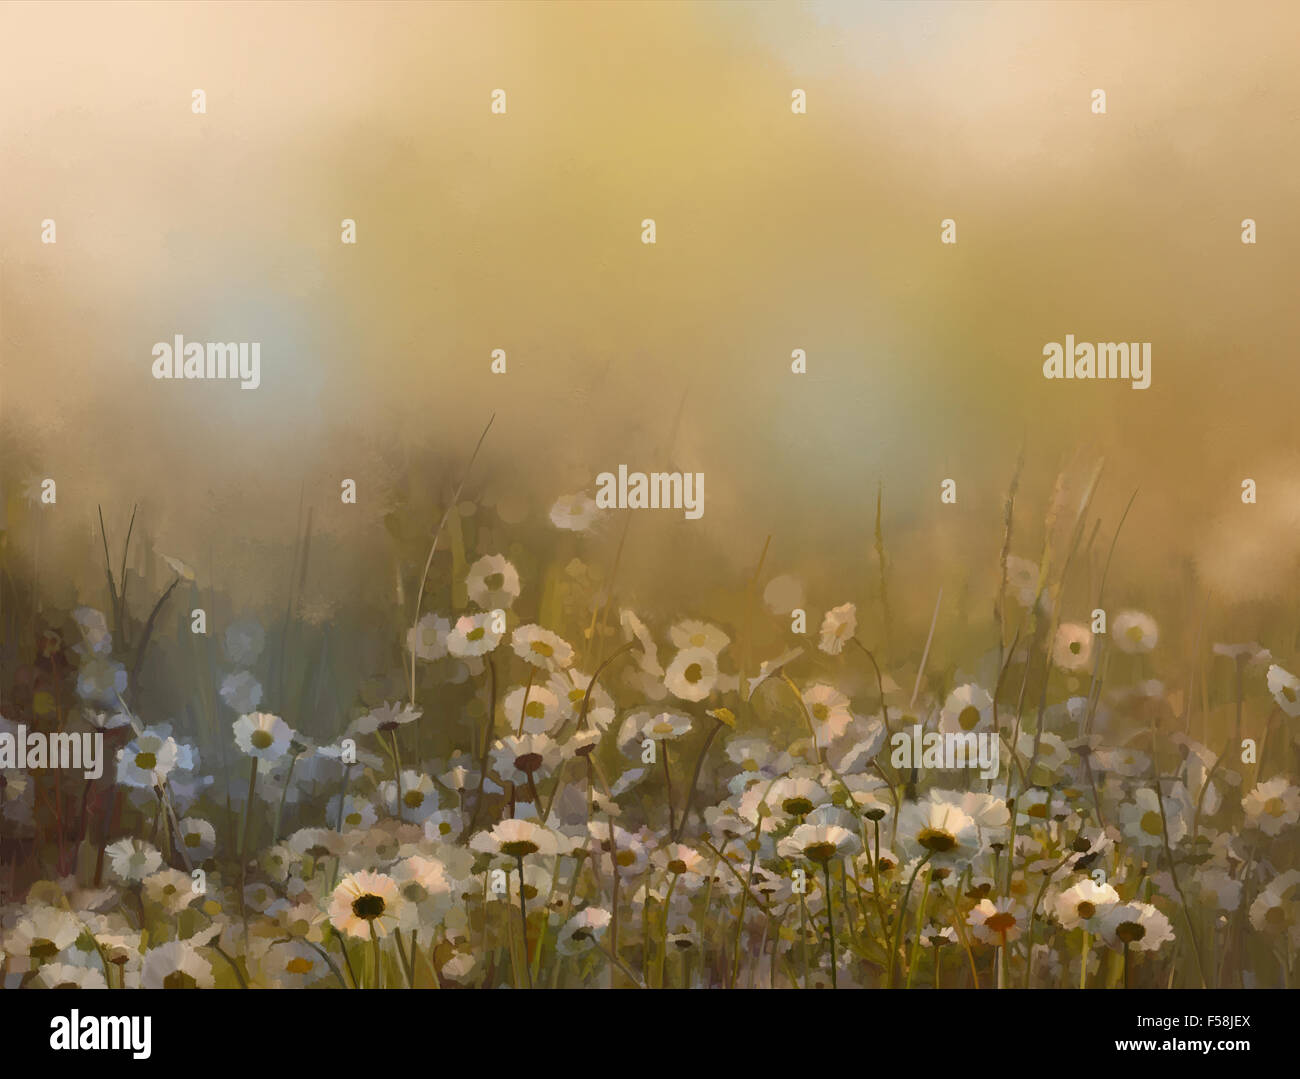 Oil painting Daisy flowers in meadow at sunset - Stock Image